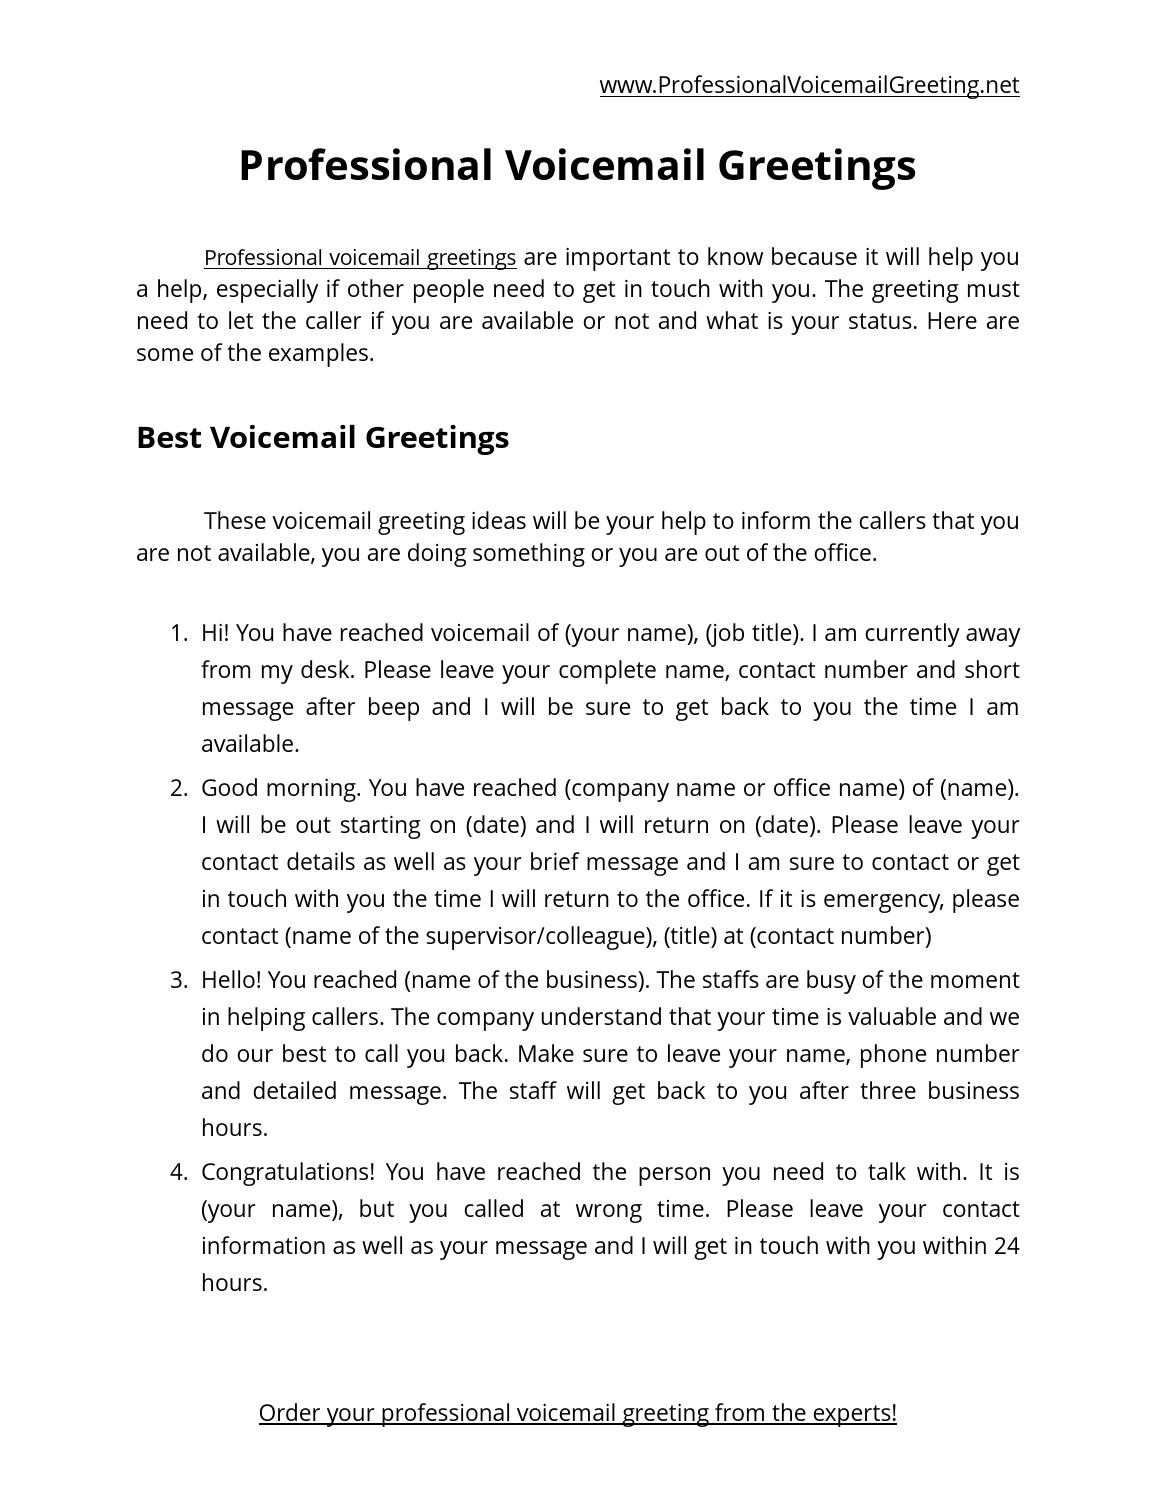 50 professional voicemail greetings by voice mail issuu m4hsunfo Choice Image